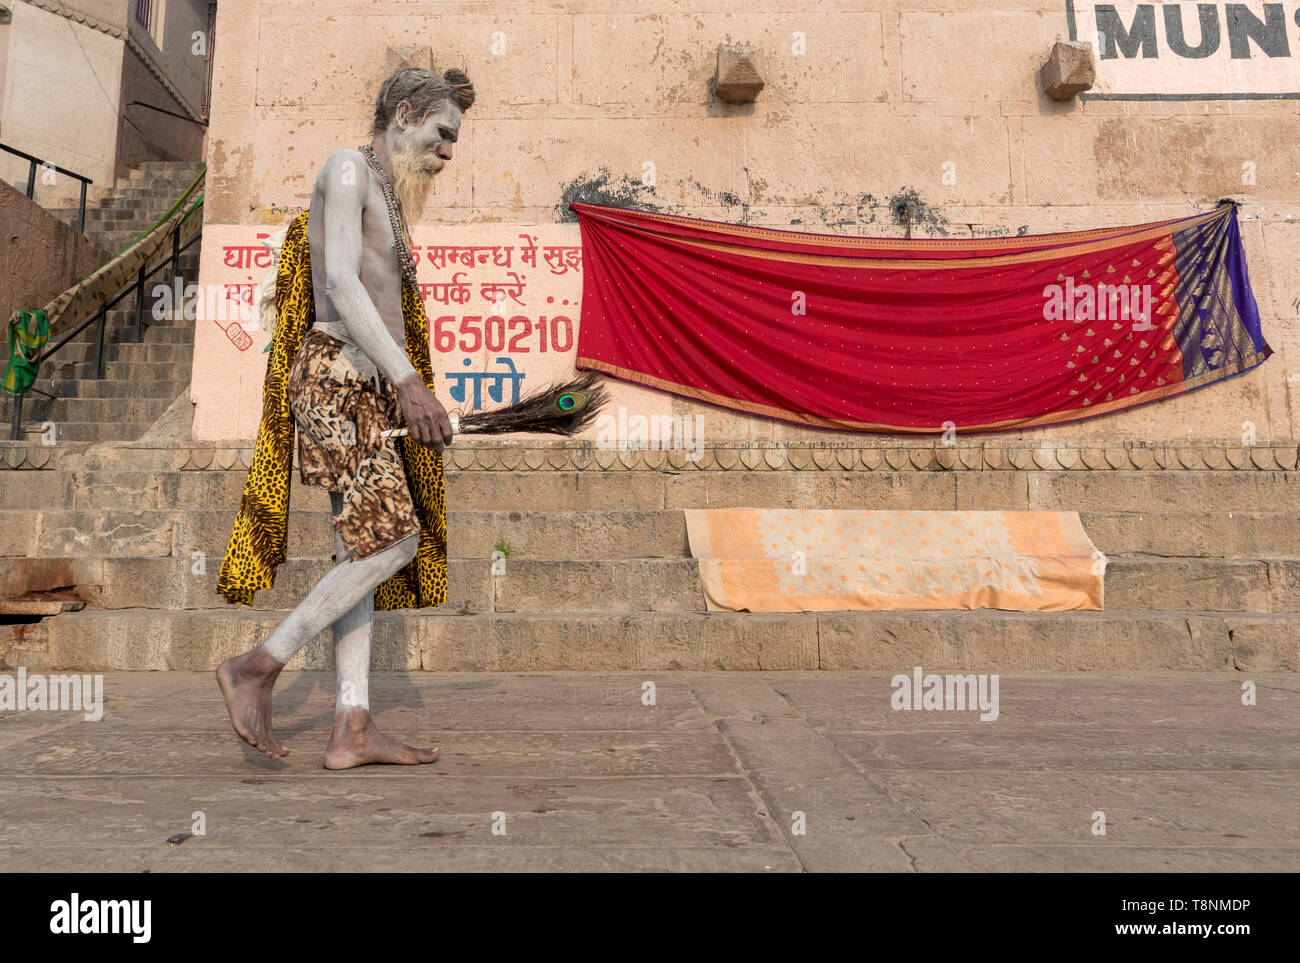 Sadhu (holy man) covered in ashes walks along the ghats of the River Ganges, Vranasi, India - Stock Image